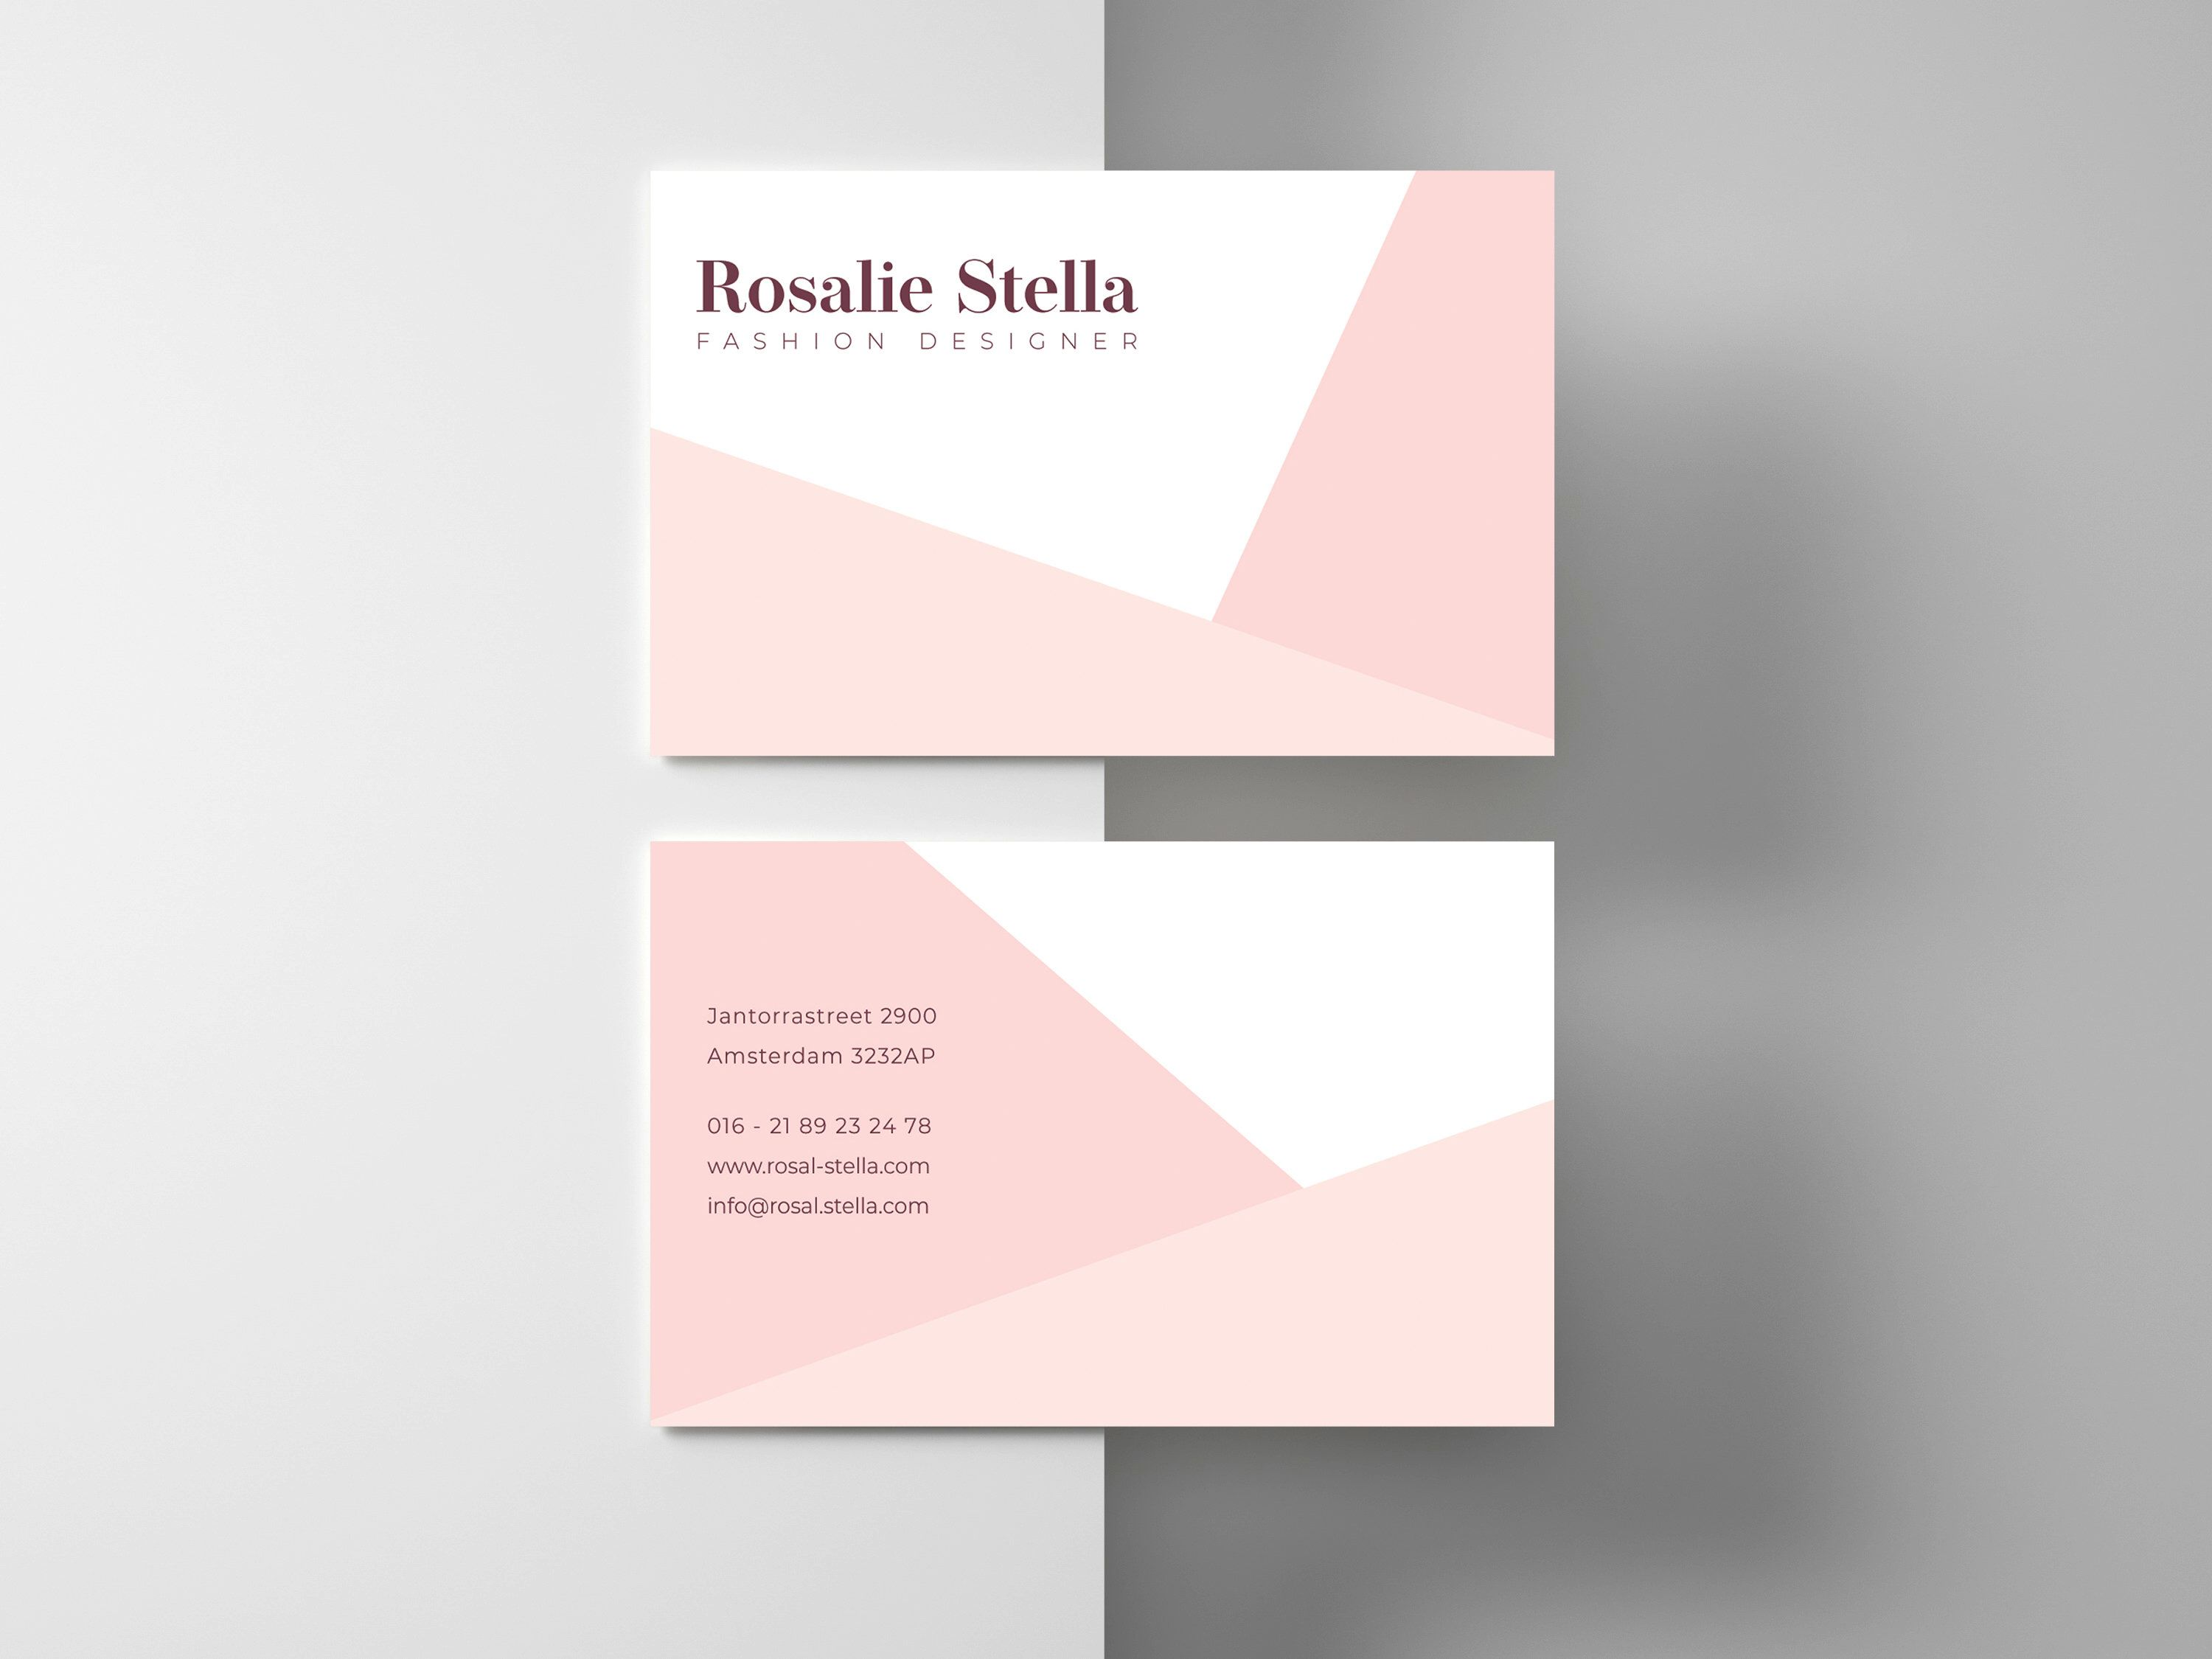 Business Card Template Business Cards Custom Business Card Etsy Business Card Design Fashion Fashion Business Cards Calling Card Design